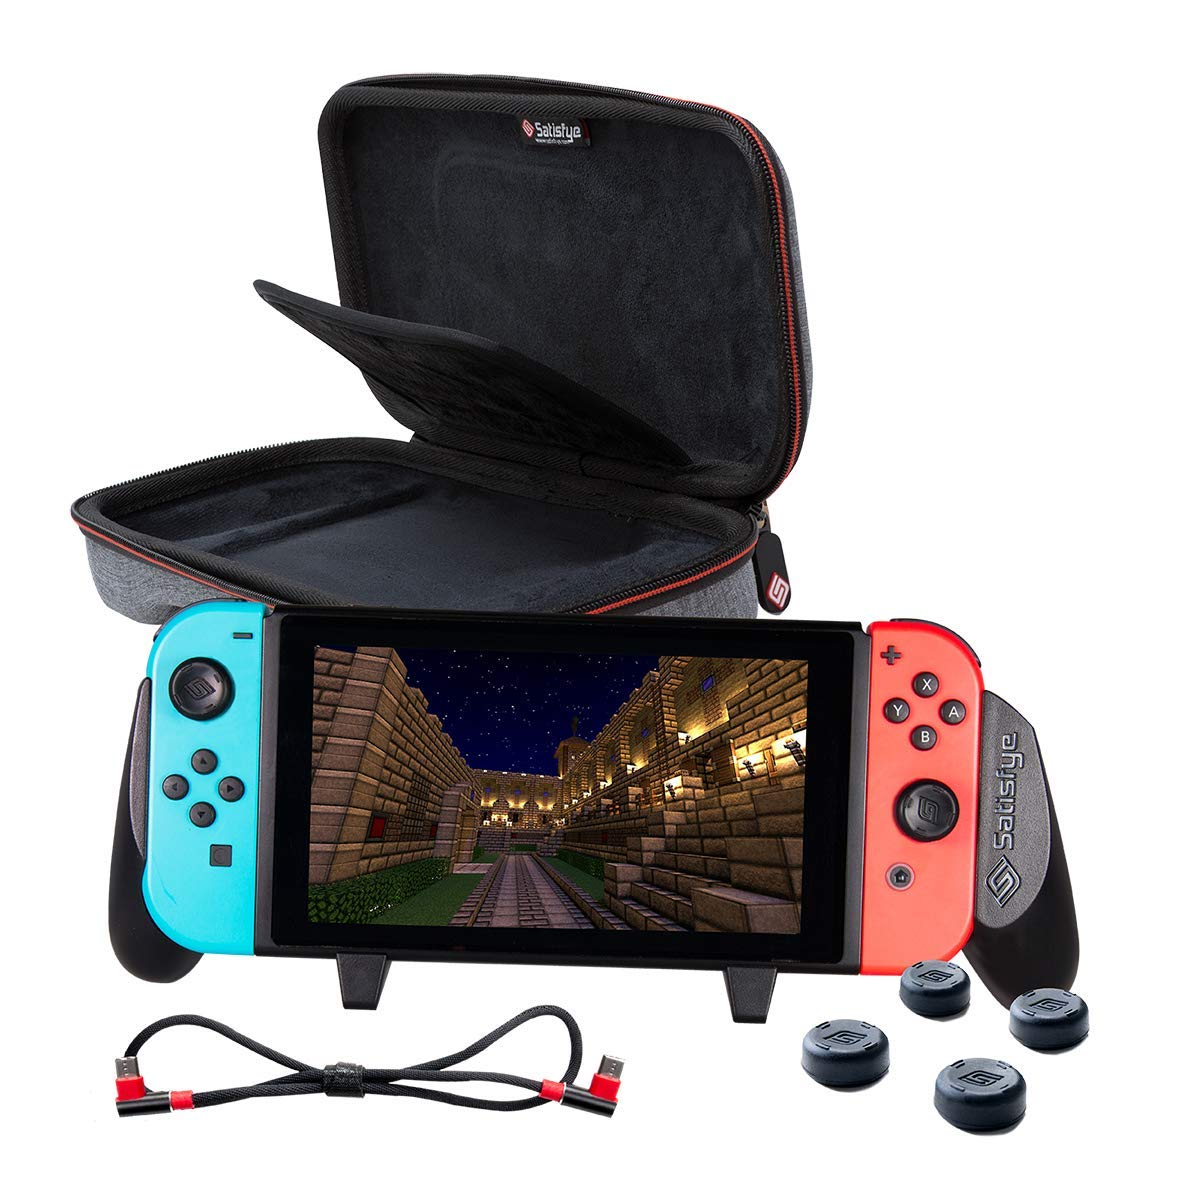 Satisfye - Accessories Bundle Compatible with Nintendo Switch - Slim Bundle, The Slim Grip Case includes: Switch Grip, Slim Case and a Low Profile USB C Charging Cable. BONUS: 4 Thumbsticks by Satisfye